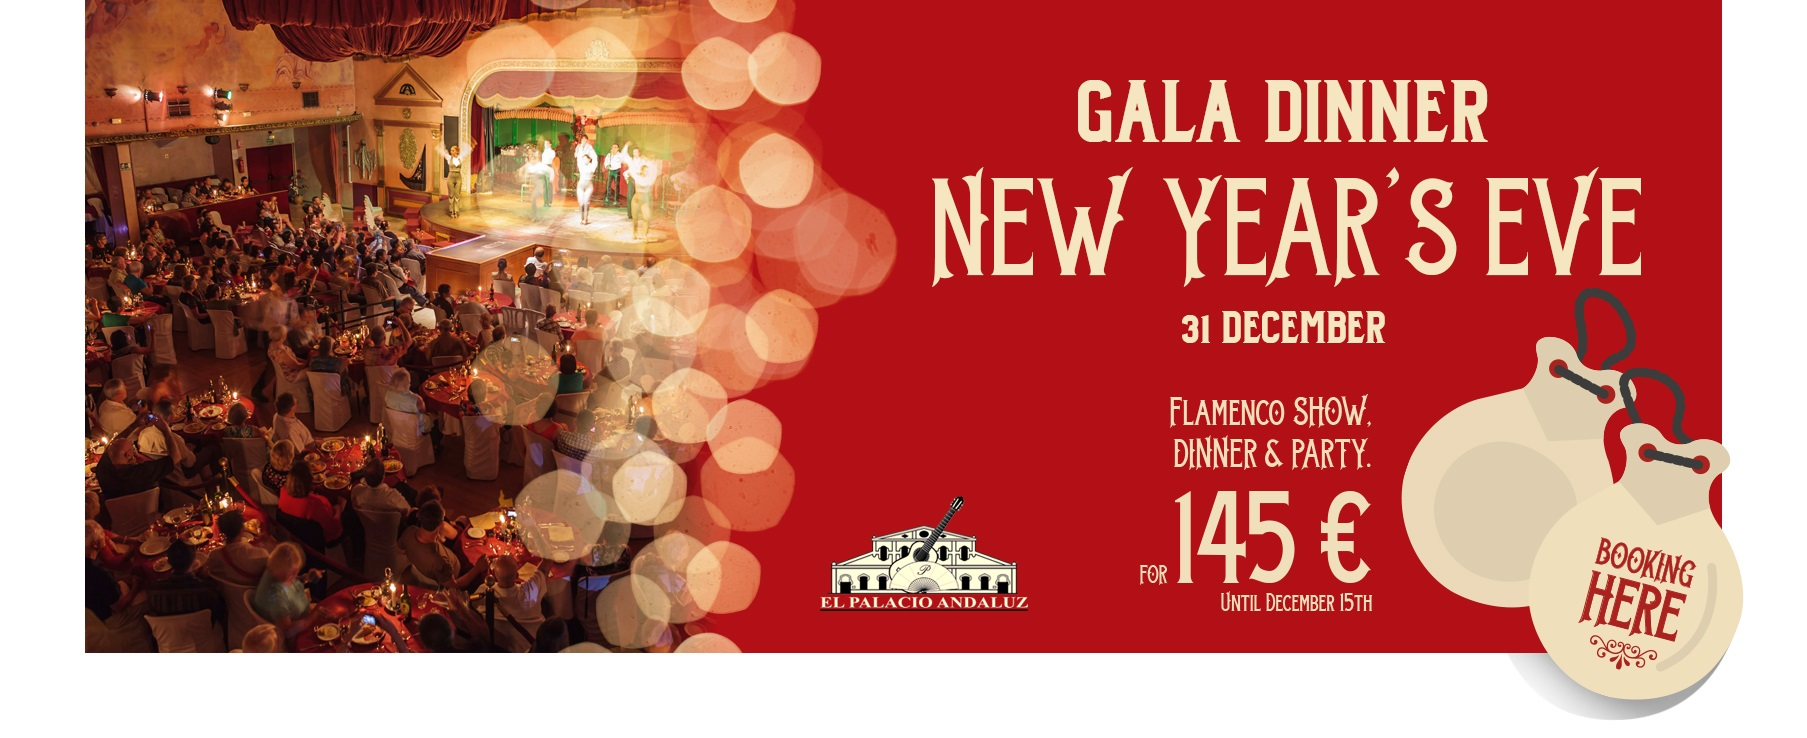 Gala Dinner New Year's Eve in Seville